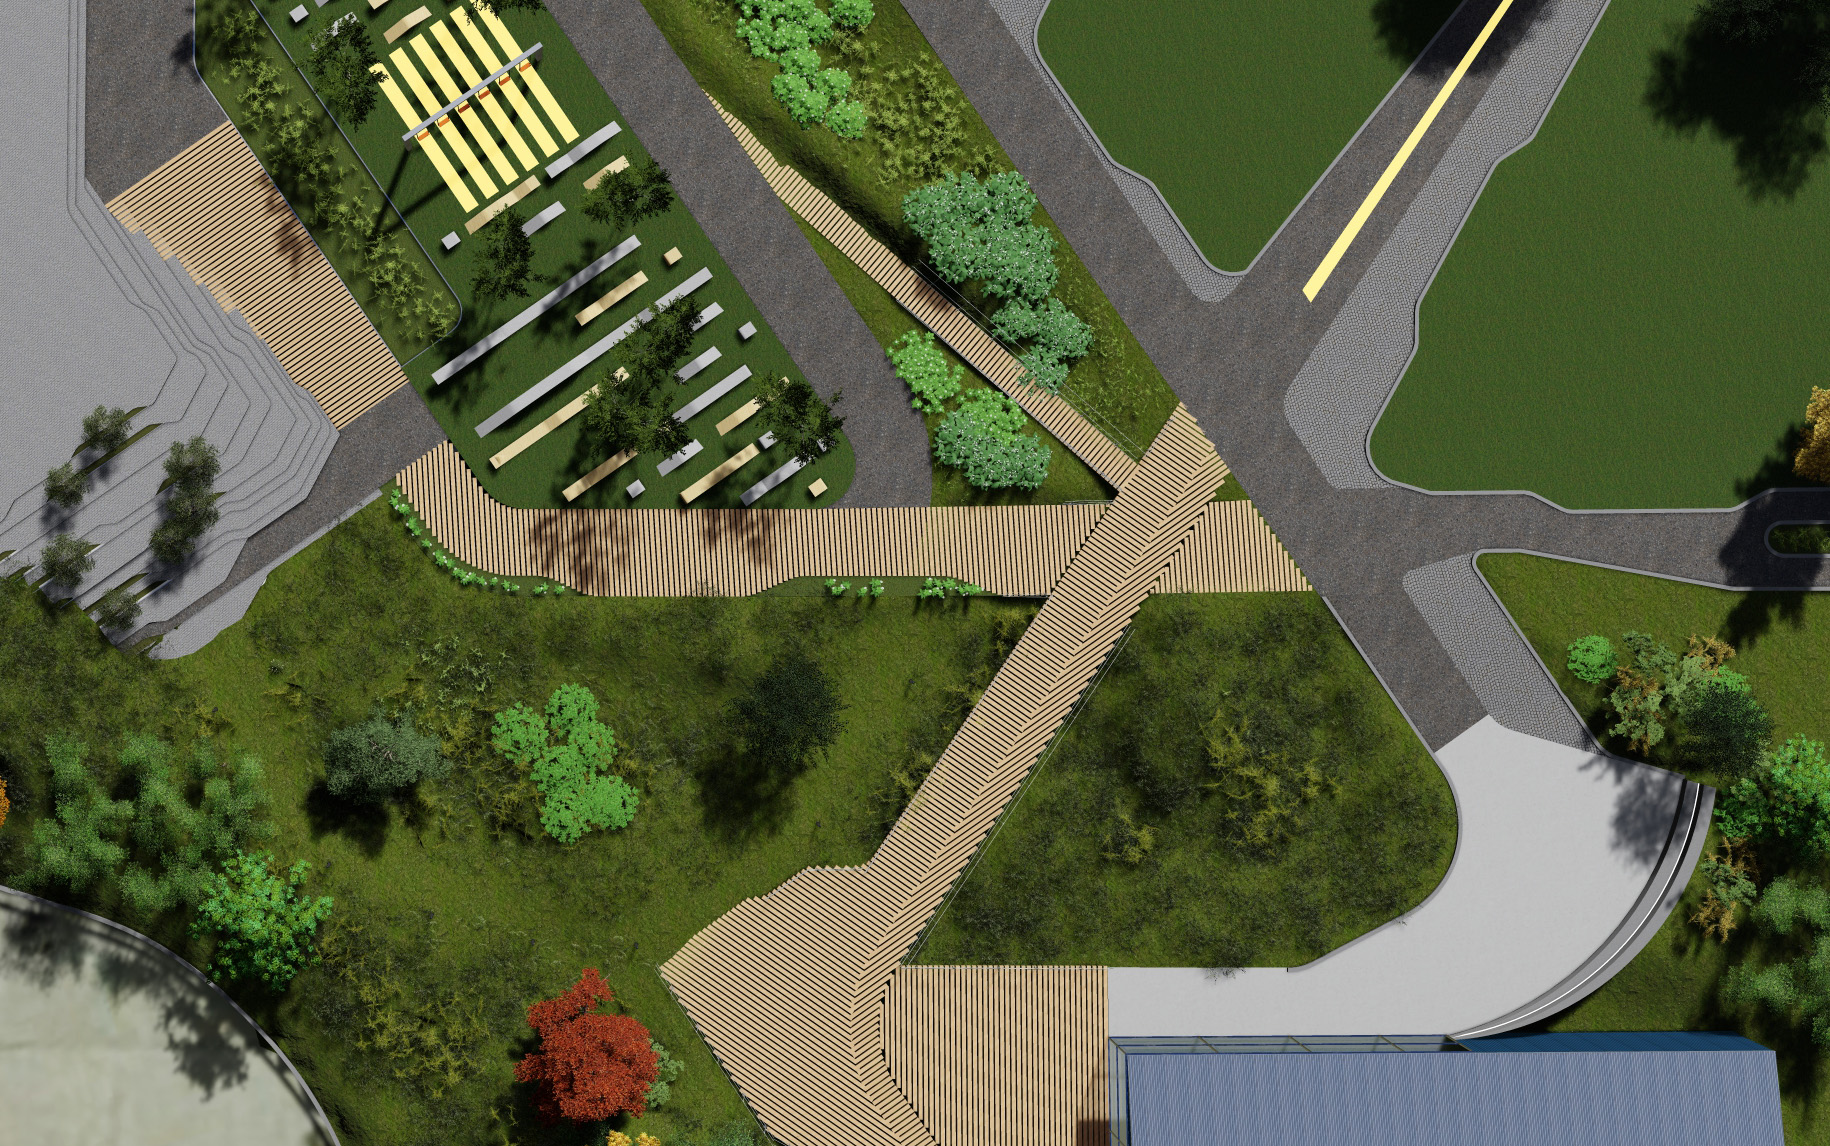 Park Park - The intersection of public-space, infrastructure, and ecology